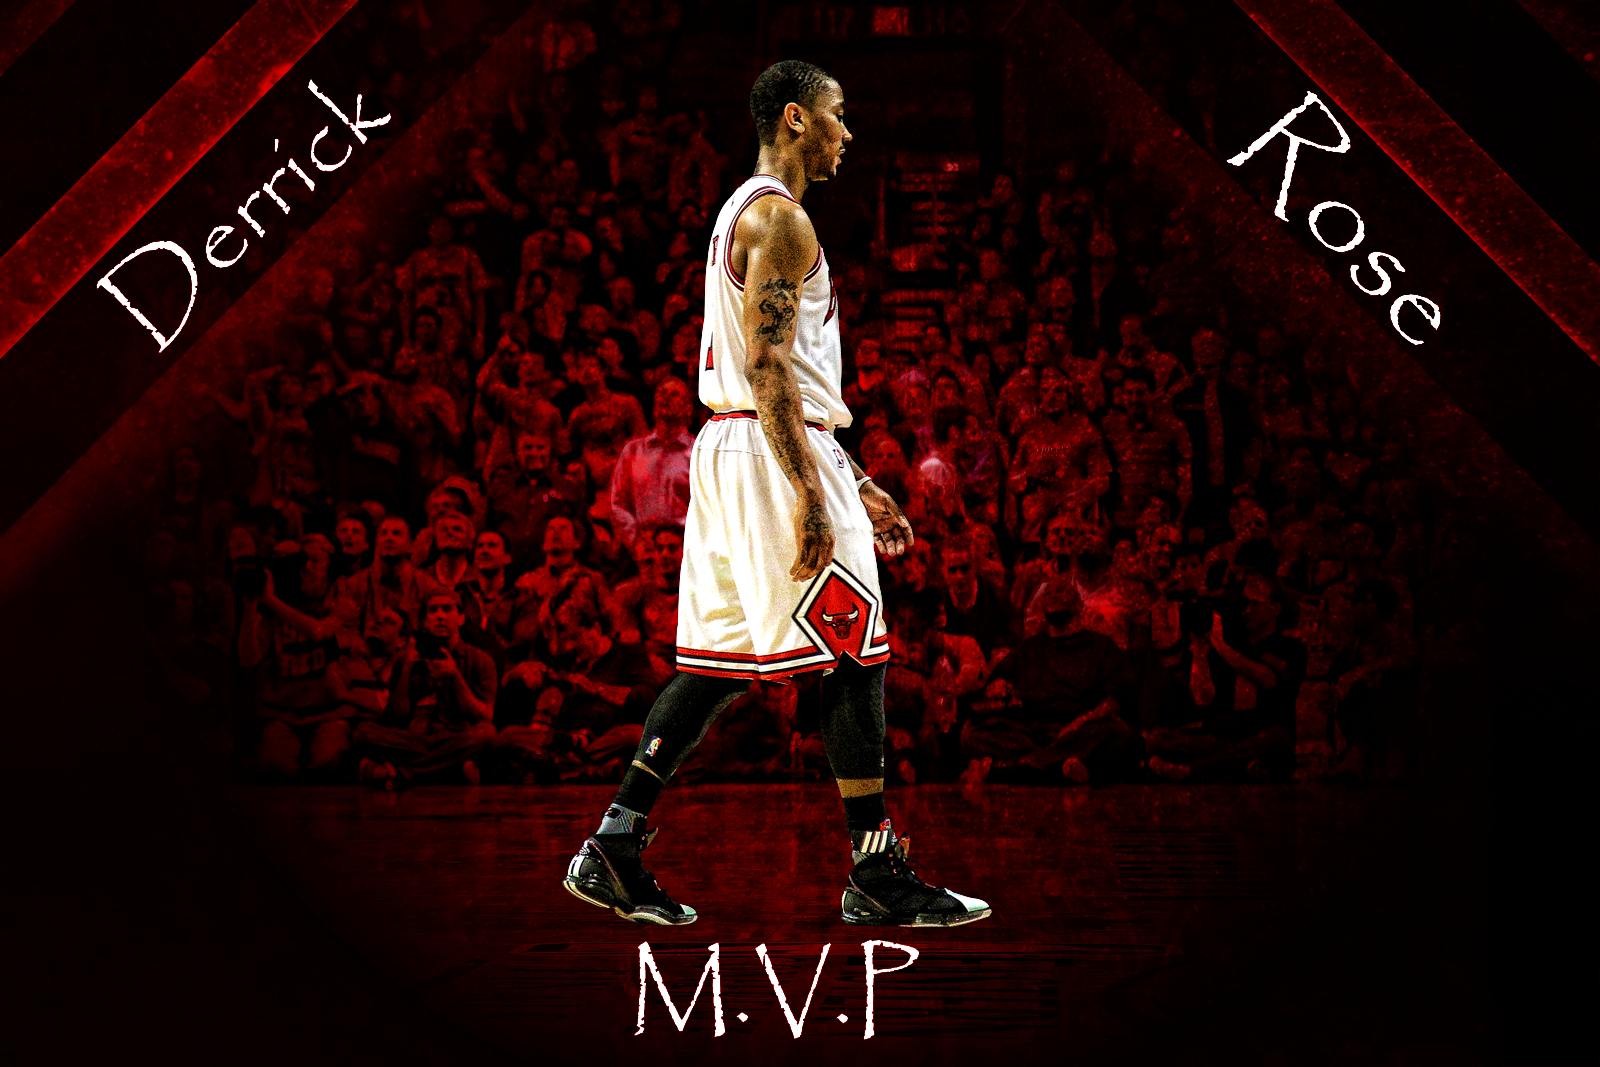 Derrick Rose MVP Wallpaper Medium photo DerrickRoseMVPTextMediumpng 1600x1067